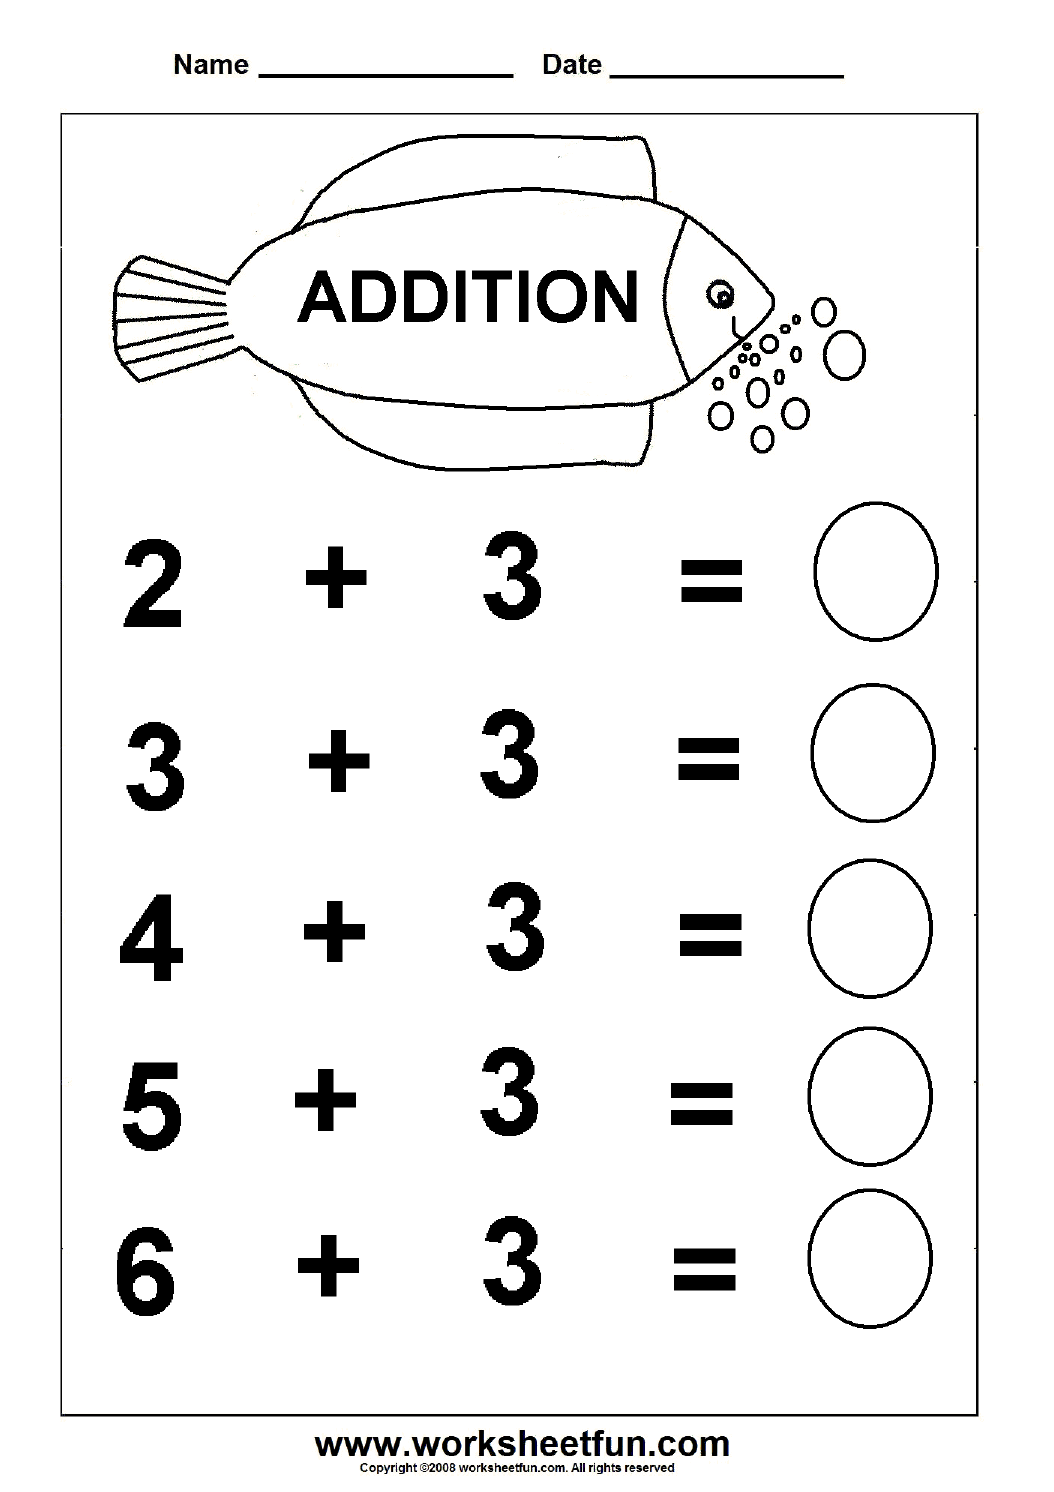 Beginner Addition 6 Kindergarten Addition Worksheets FREE – Math Worksheets for Kindergarten Addition and Subtraction